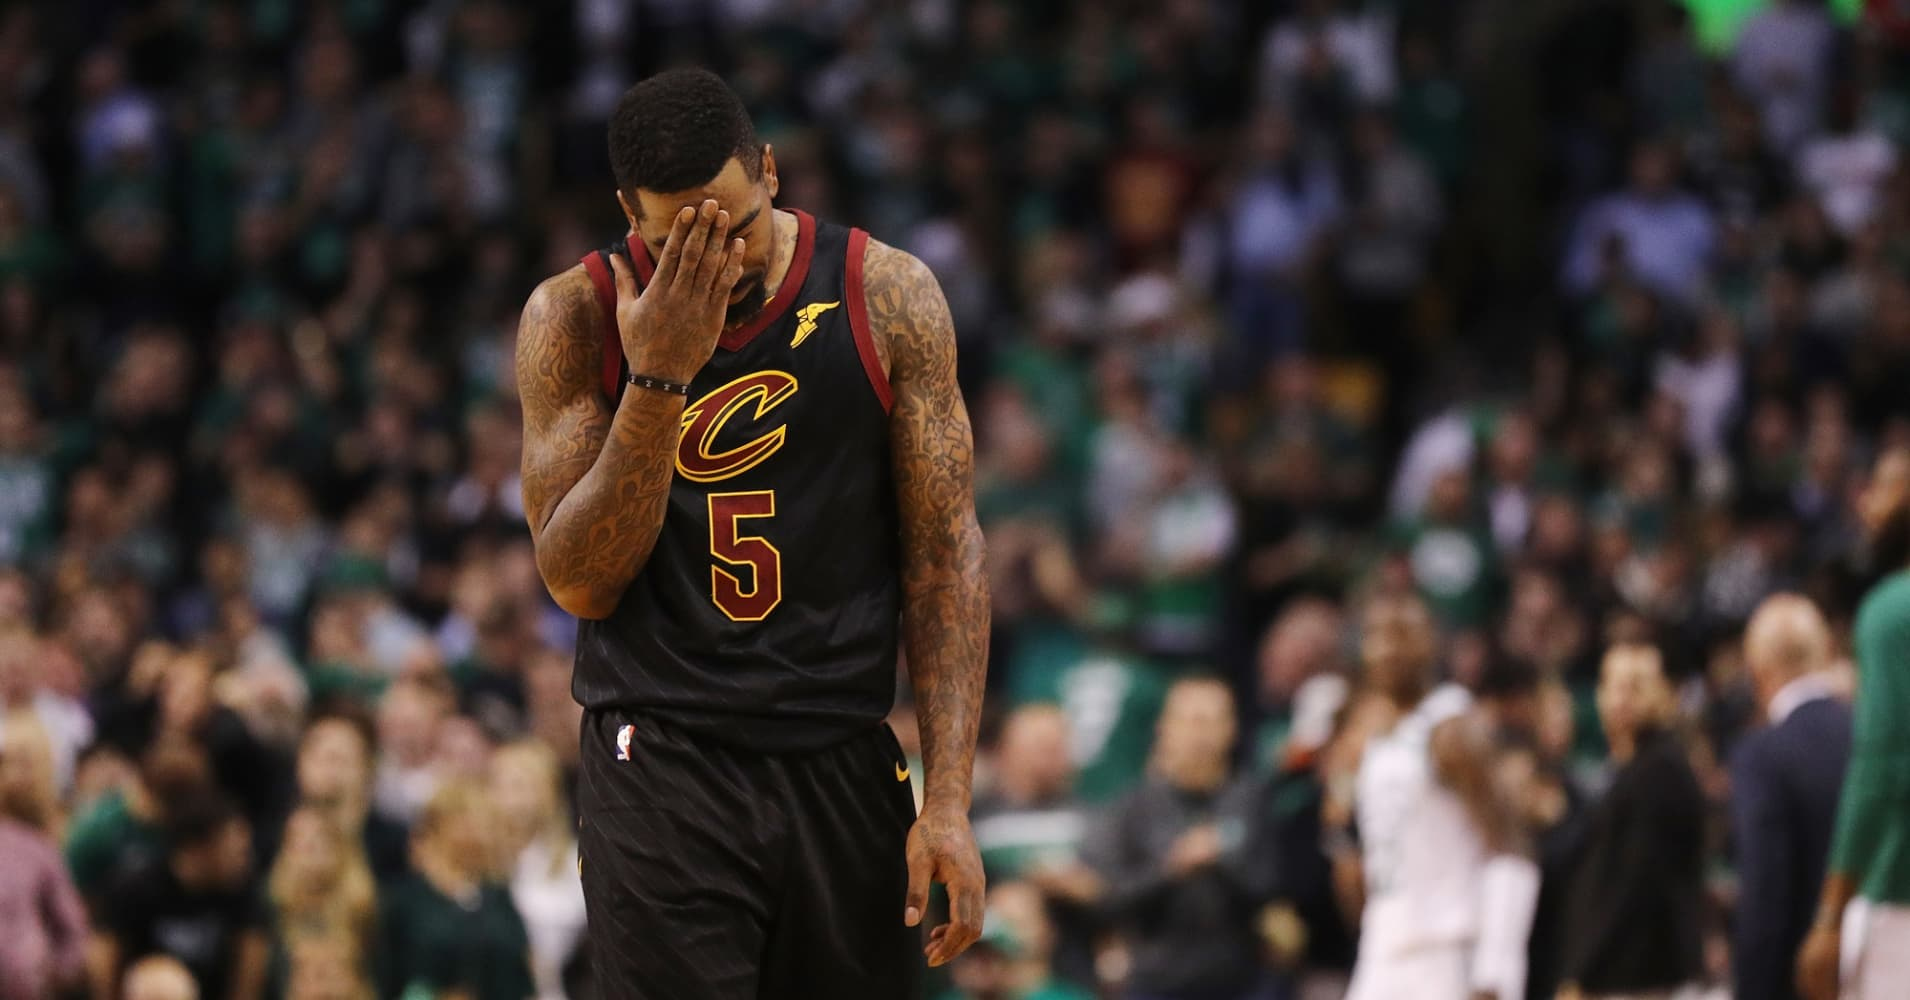 JR Smith #5 of the Cleveland Cavaliers reacts in the first half against the Boston Celtics during Game Seven of the 2018 NBA Eastern Conference Finals at TD Garden on May 27, 2018 in Boston, Massachusetts.